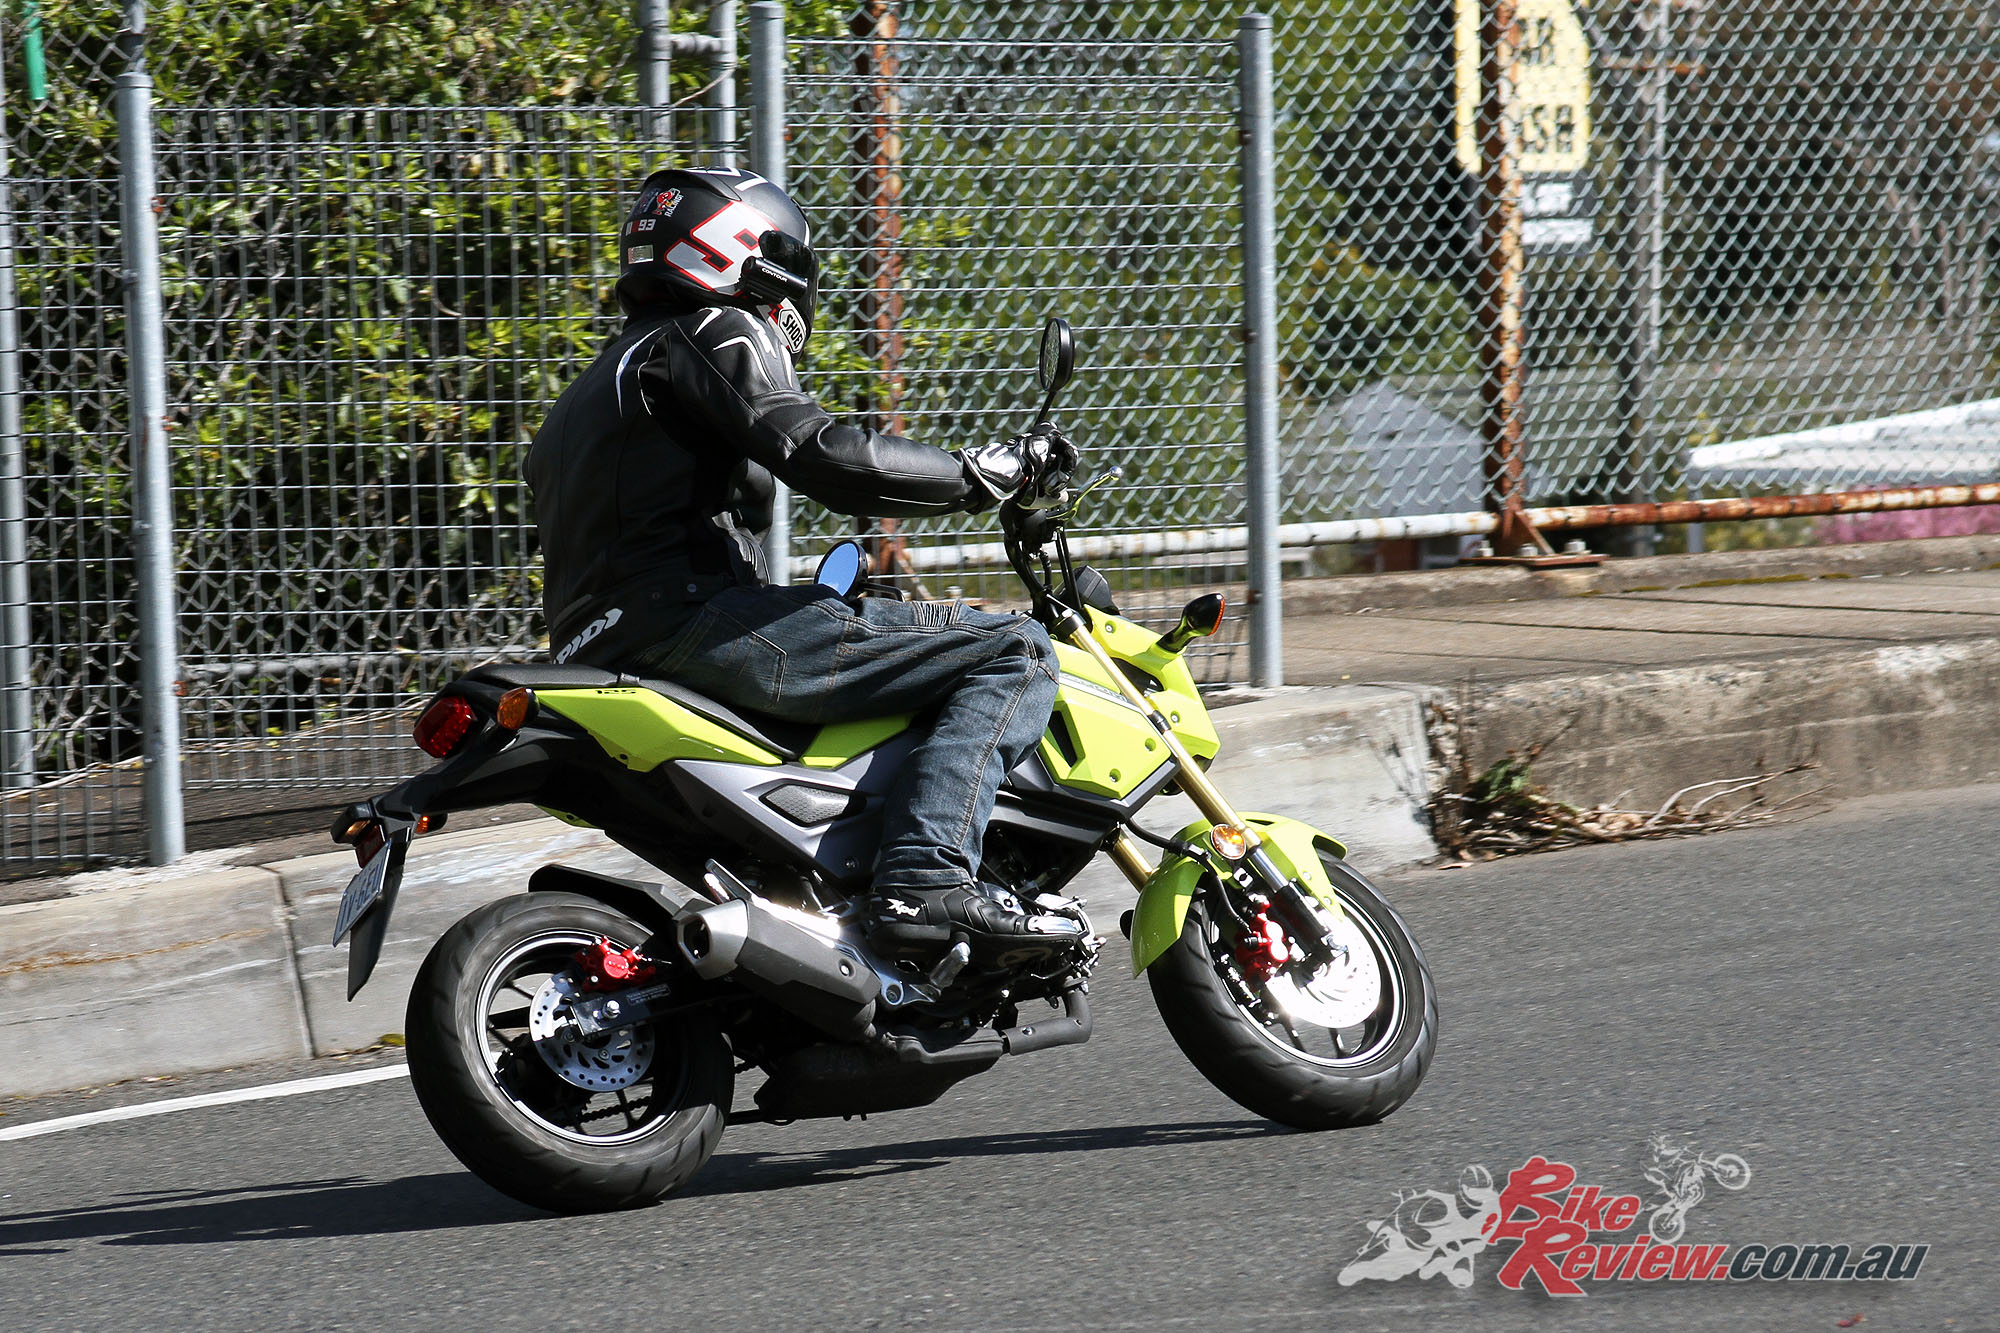 Honda Grom Review >> Review: 2016 Honda Grom - Bike Review